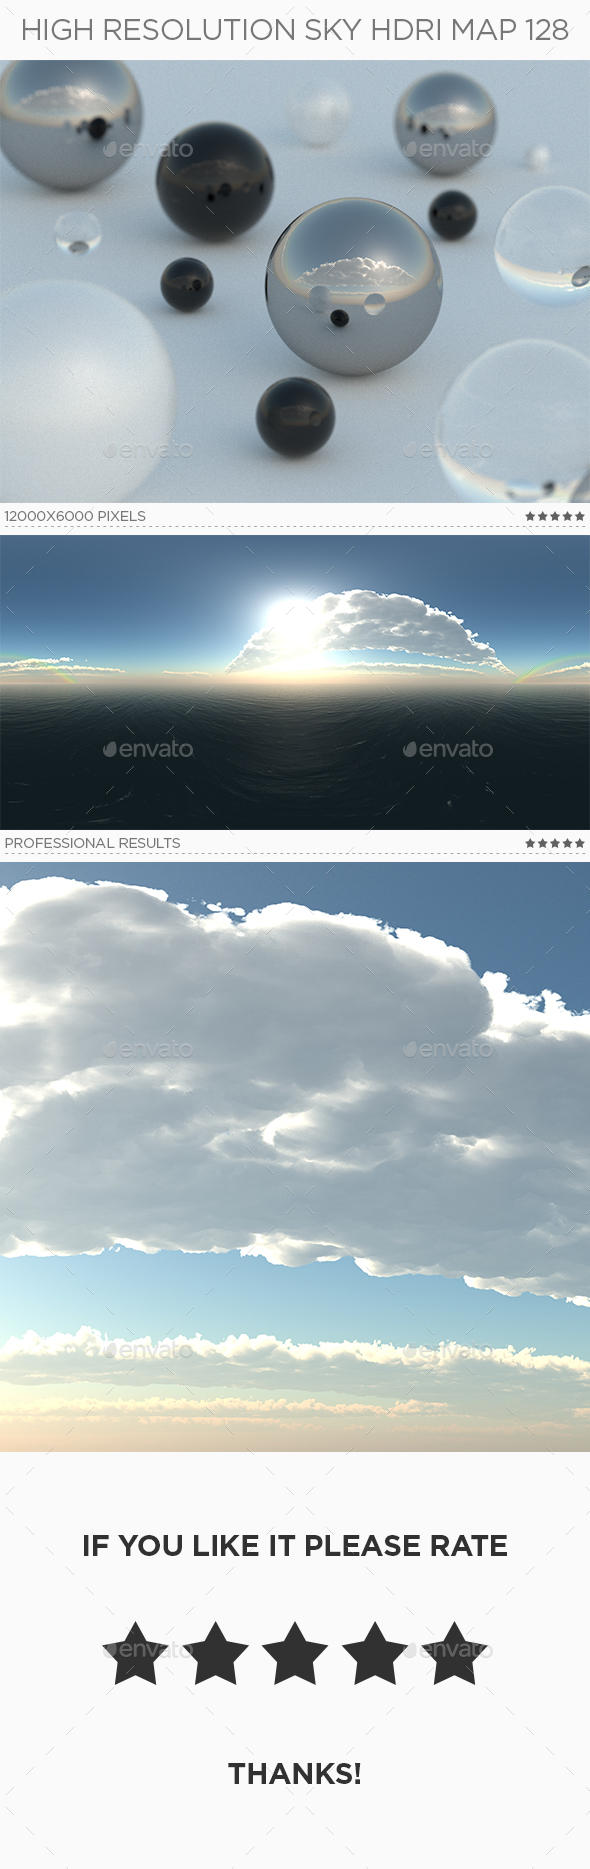 High Resolution Sky HDRi Map 128 - 3DOcean Item for Sale